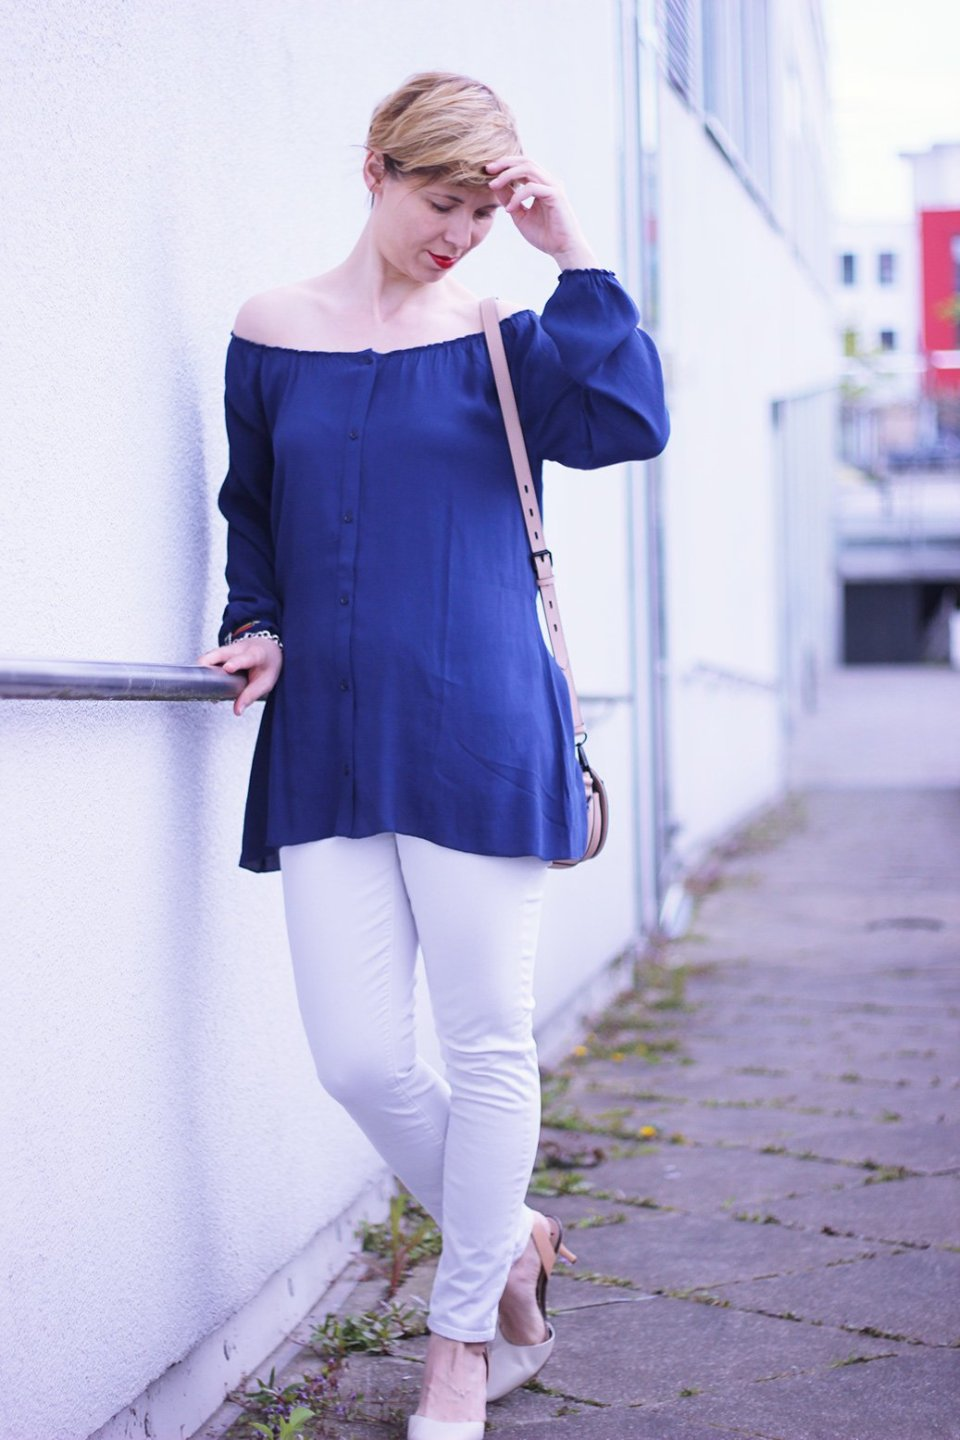 Off-Shoulder-Bluse, American Vintage, blau, Bluse, weiß, old navy, Sam Edelman, Rebecca Minkoff, Conny Doll